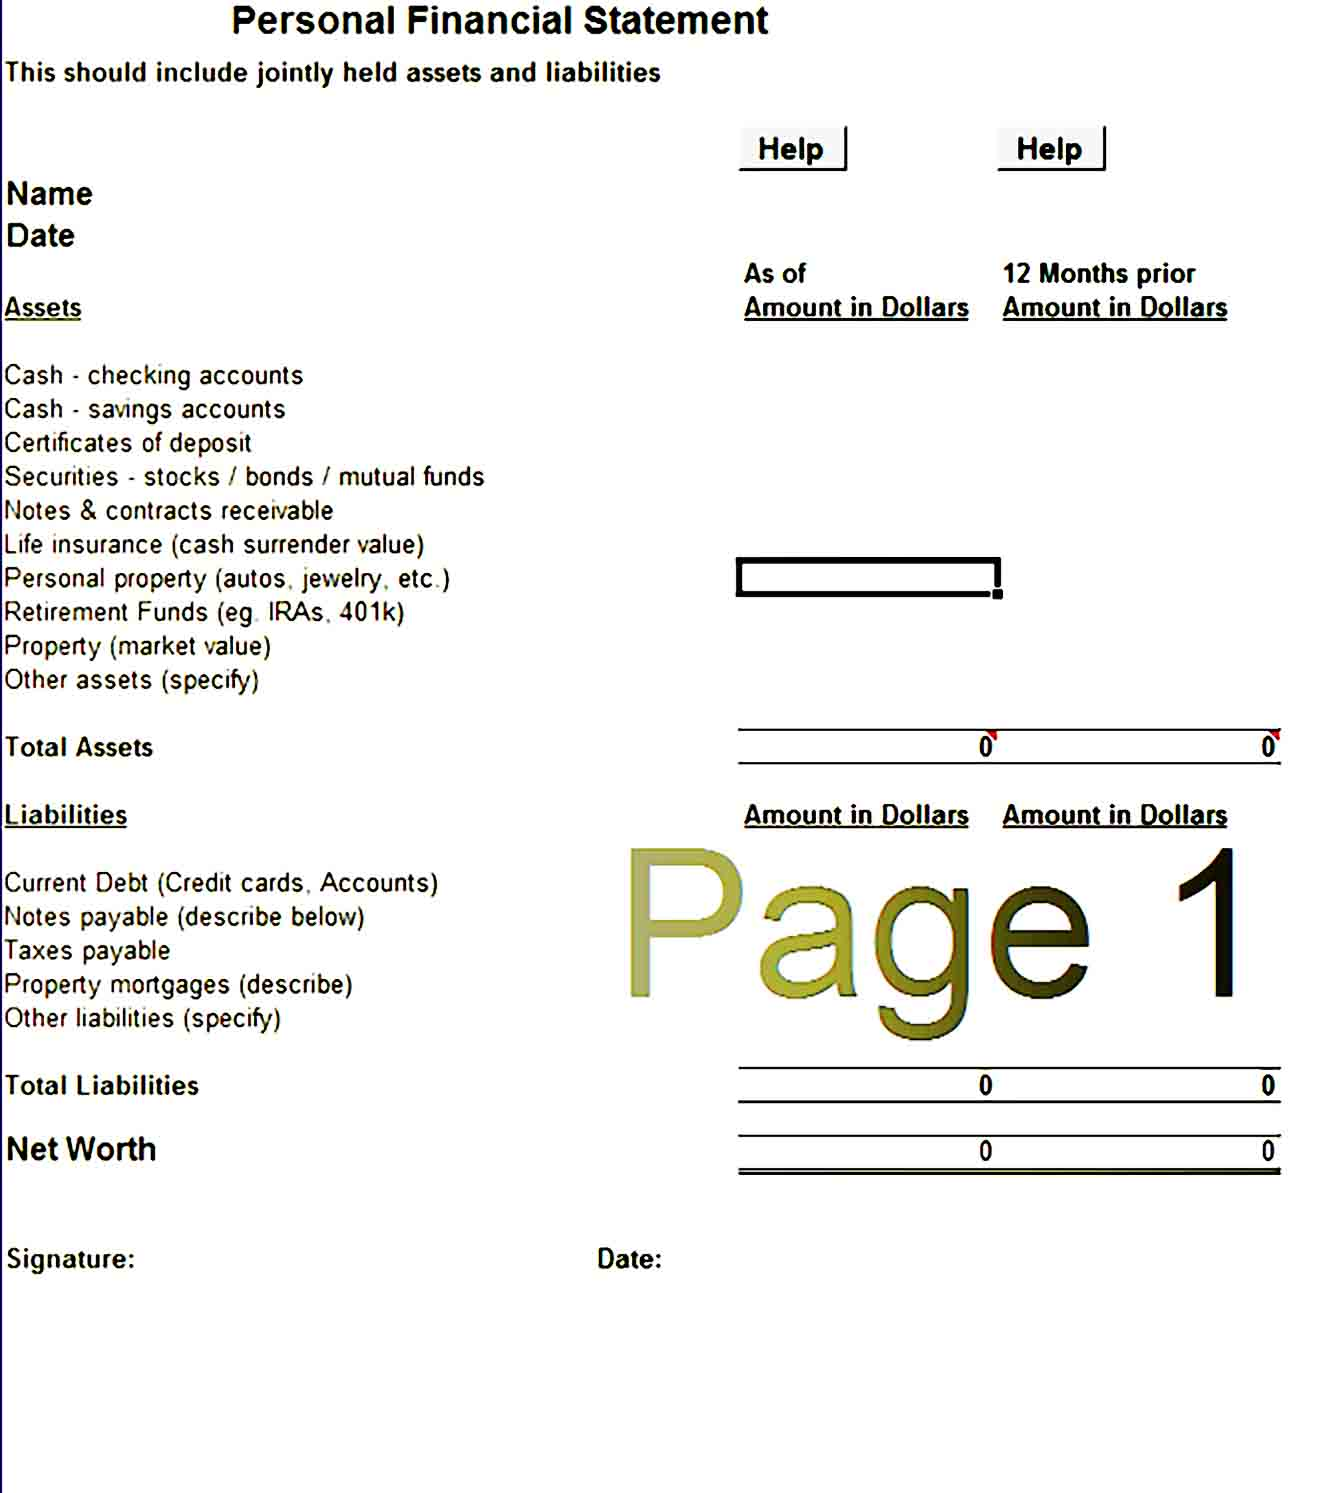 Personal Financial Statement Template 33